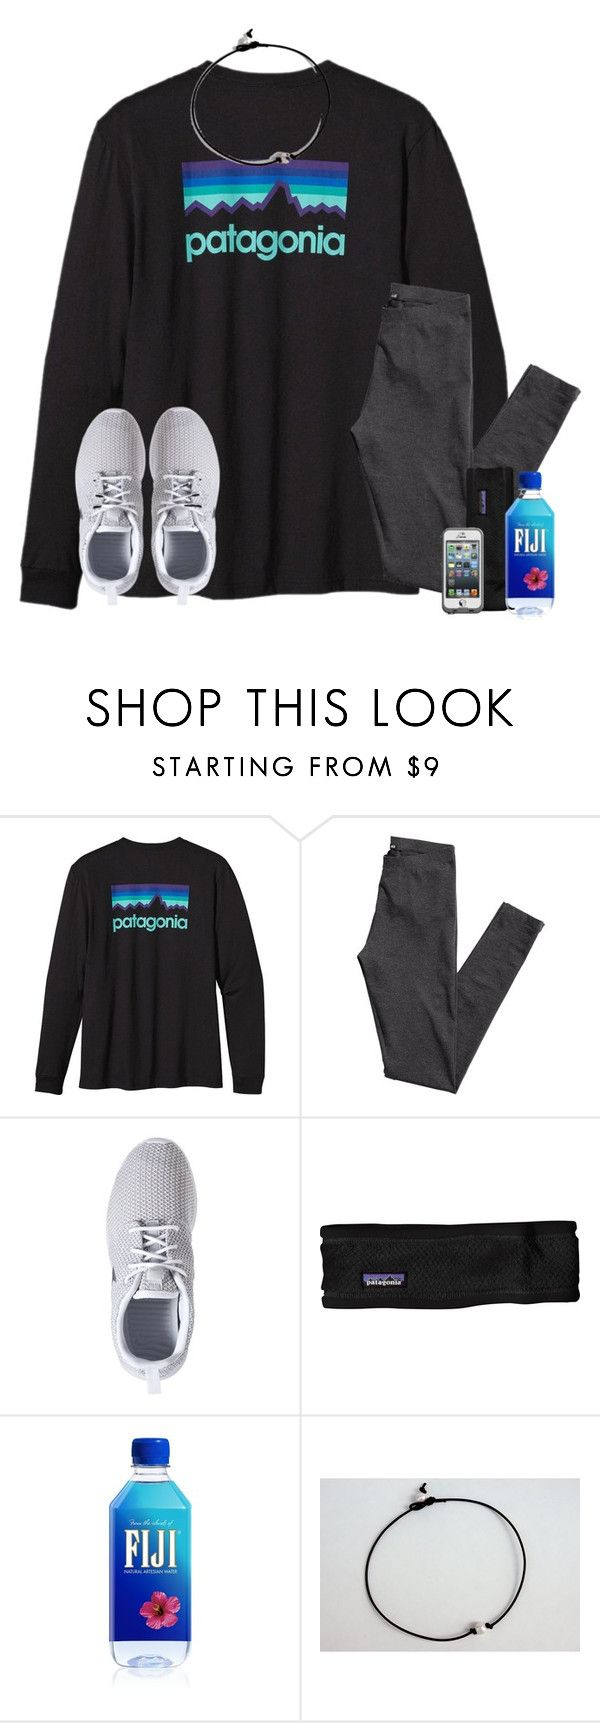 """Any suggestions how to redecorate a room preppy style?"" by katew4019 ❤ liked on Polyvore featuring Patagonia, H&M, NIKE and LifeProof"